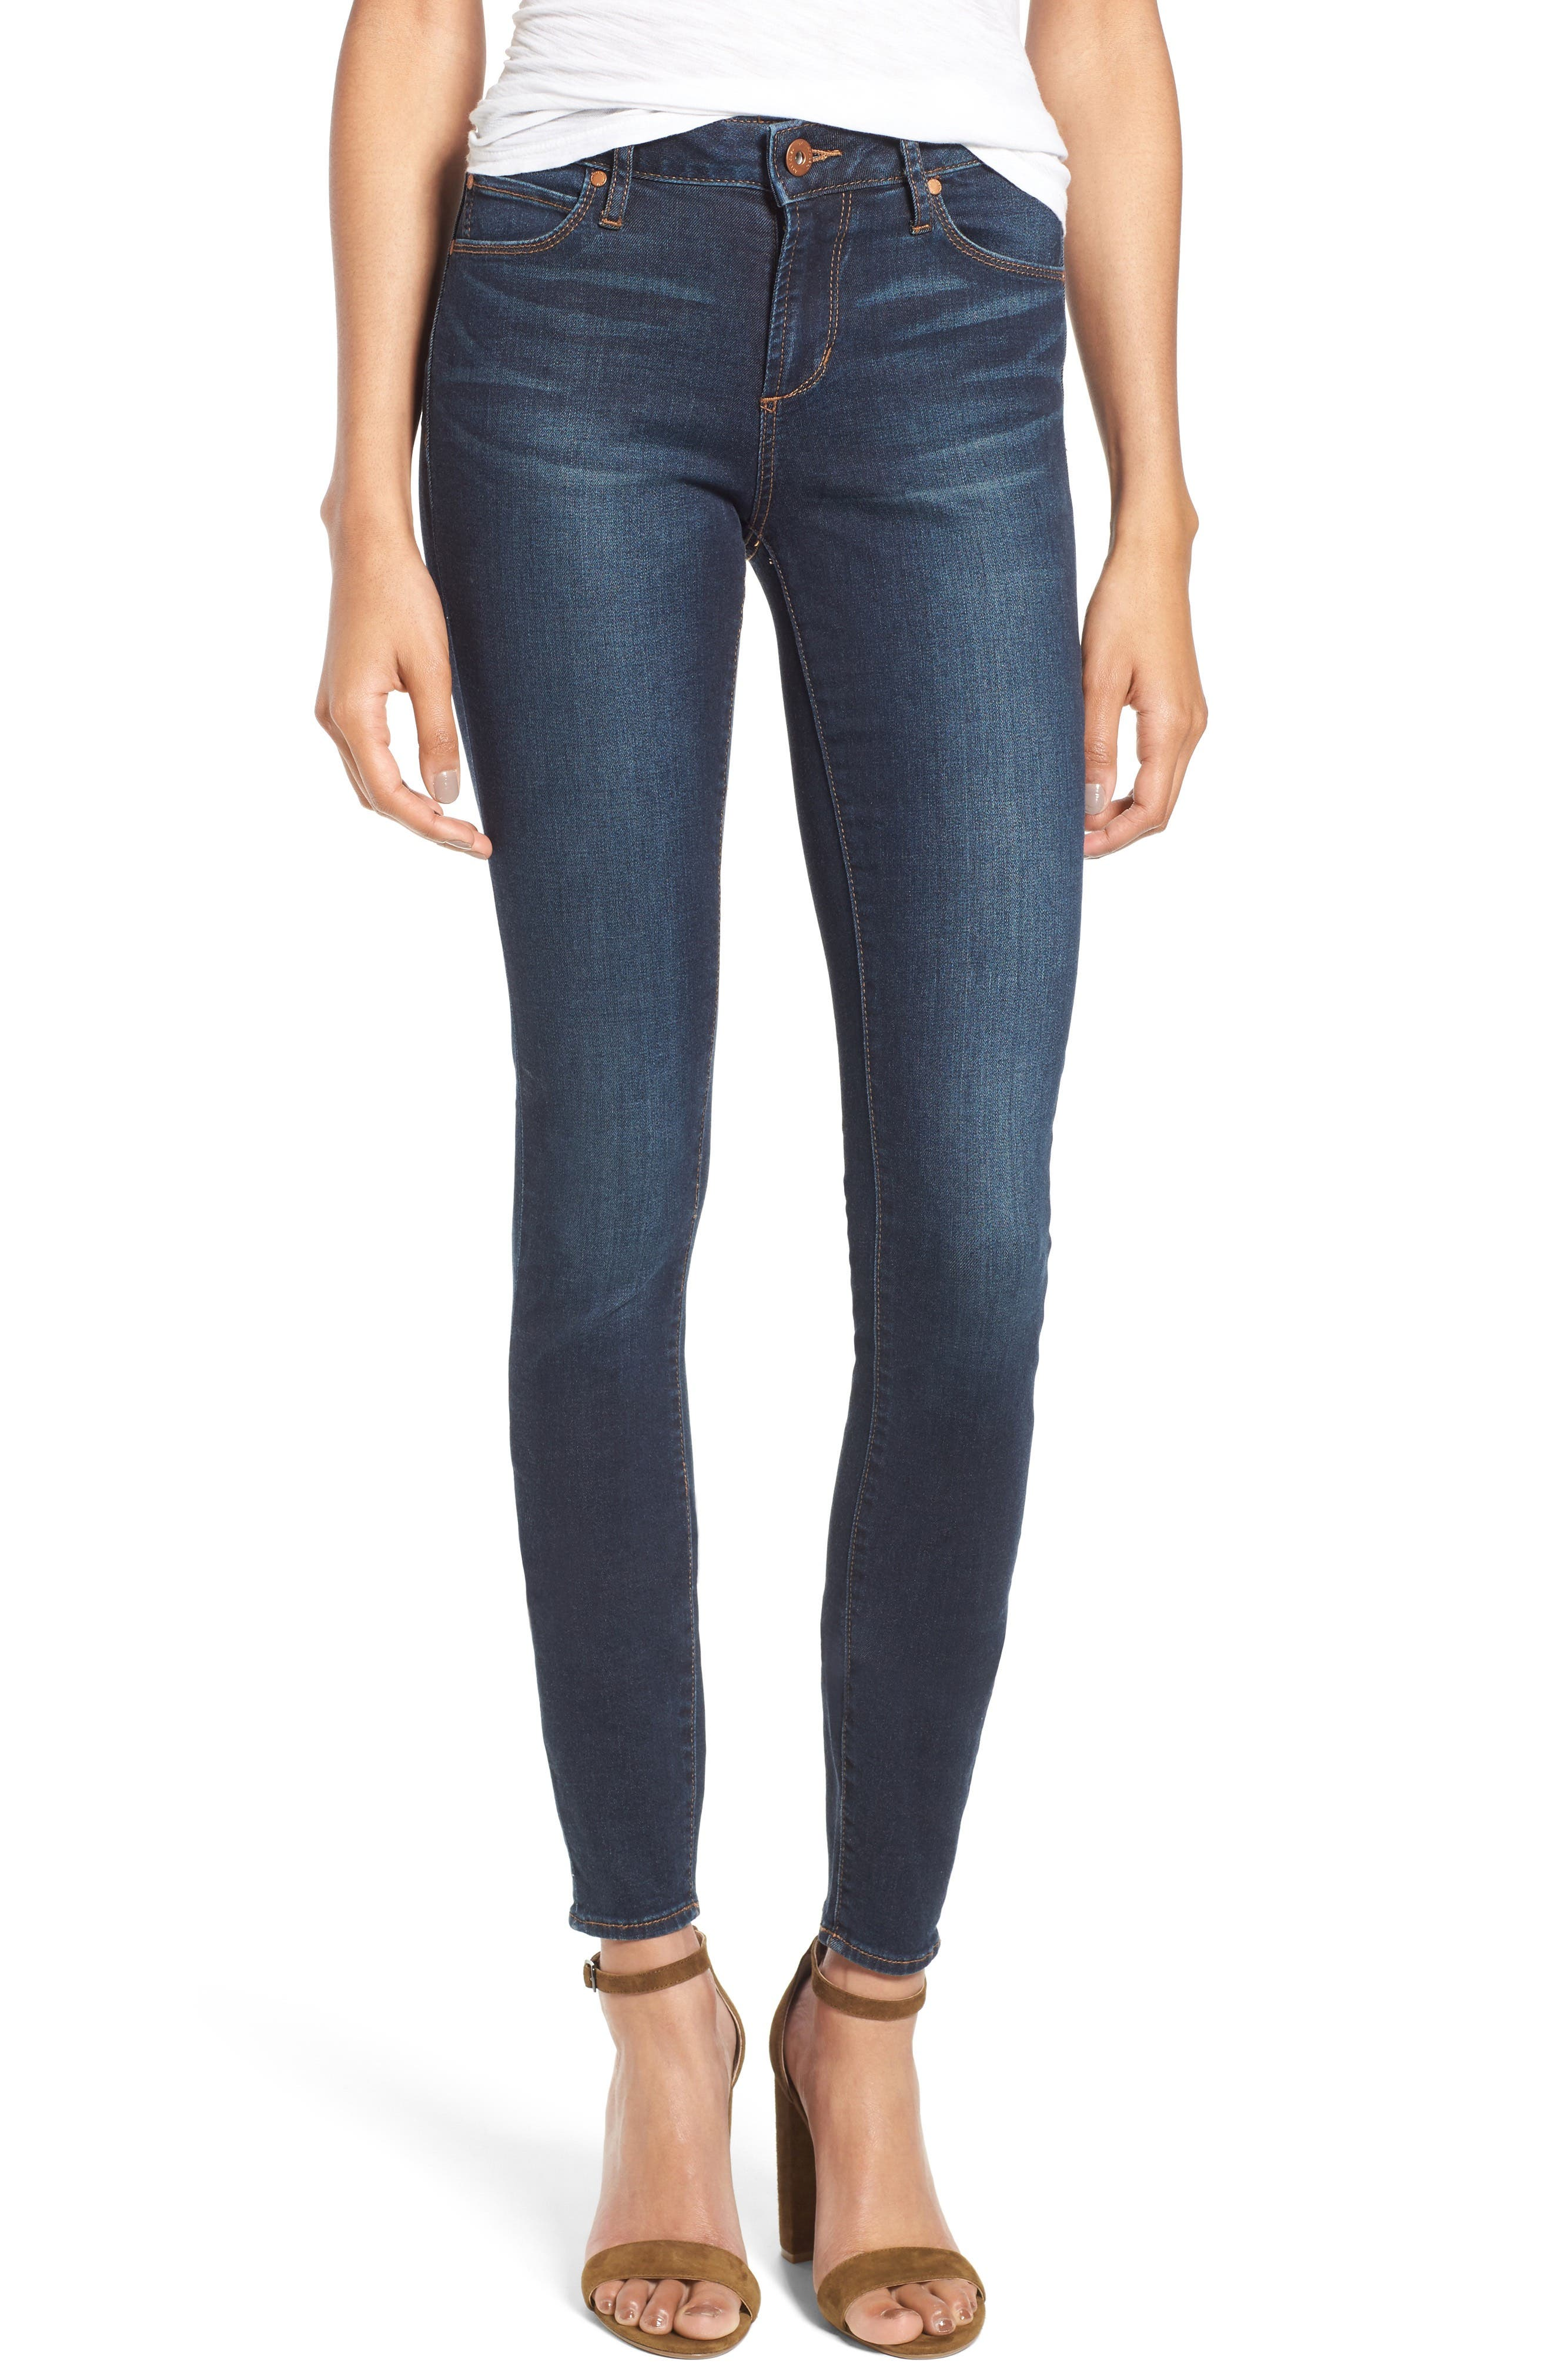 Alternate Image 1 Selected - Articles of Society Mya Skinny Jeans (Waverly)